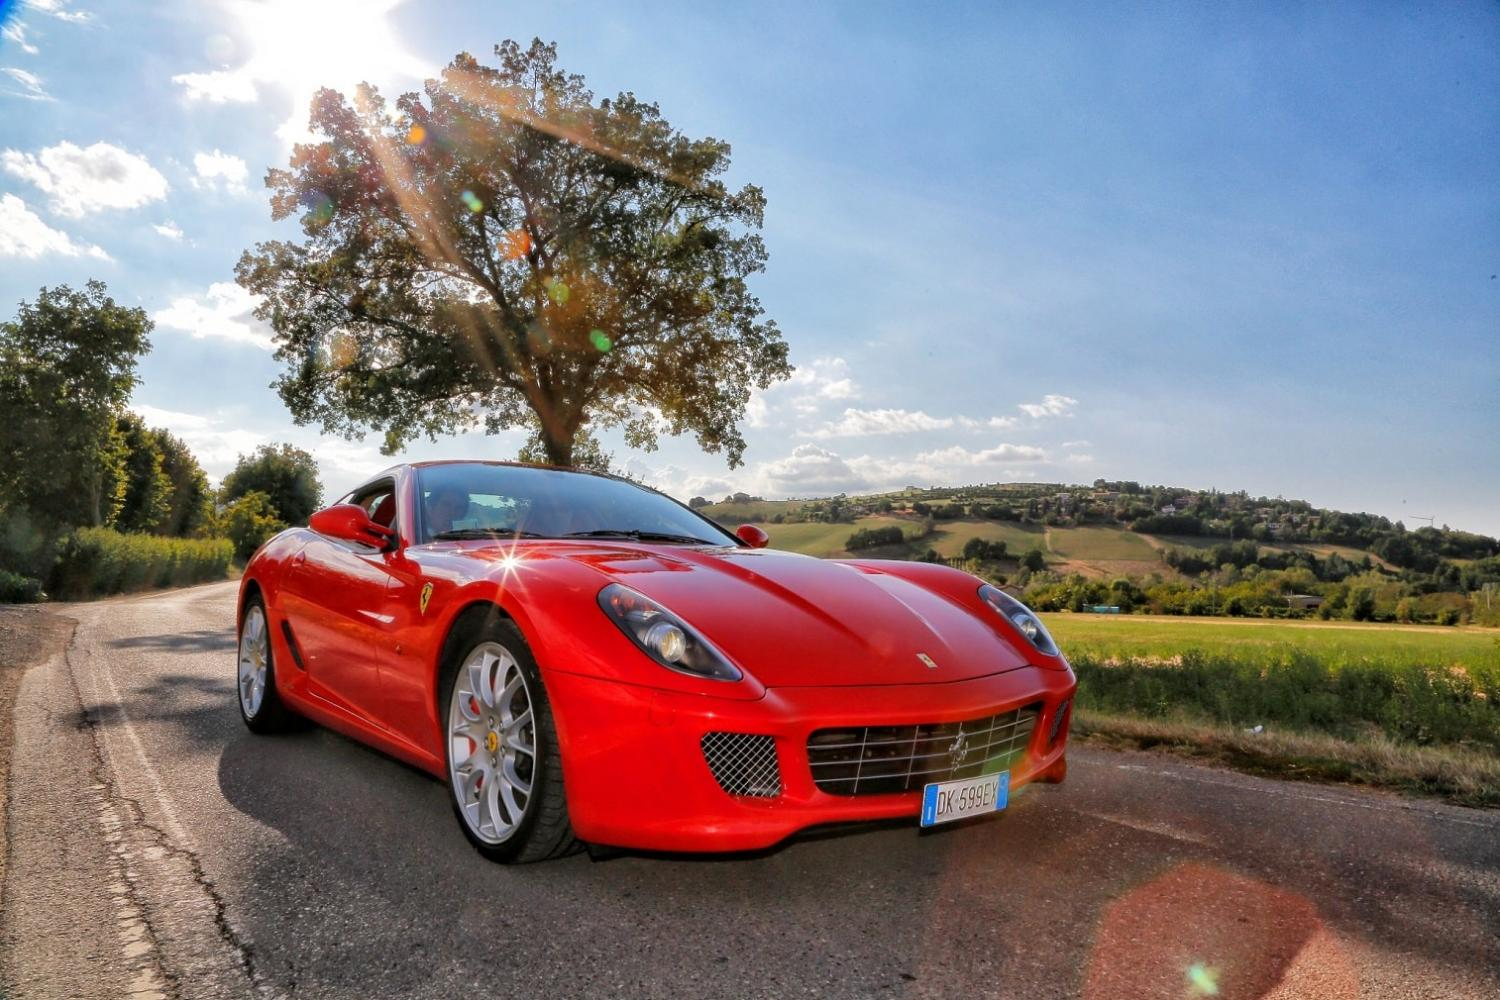 Test drive a Ferrari in Italy